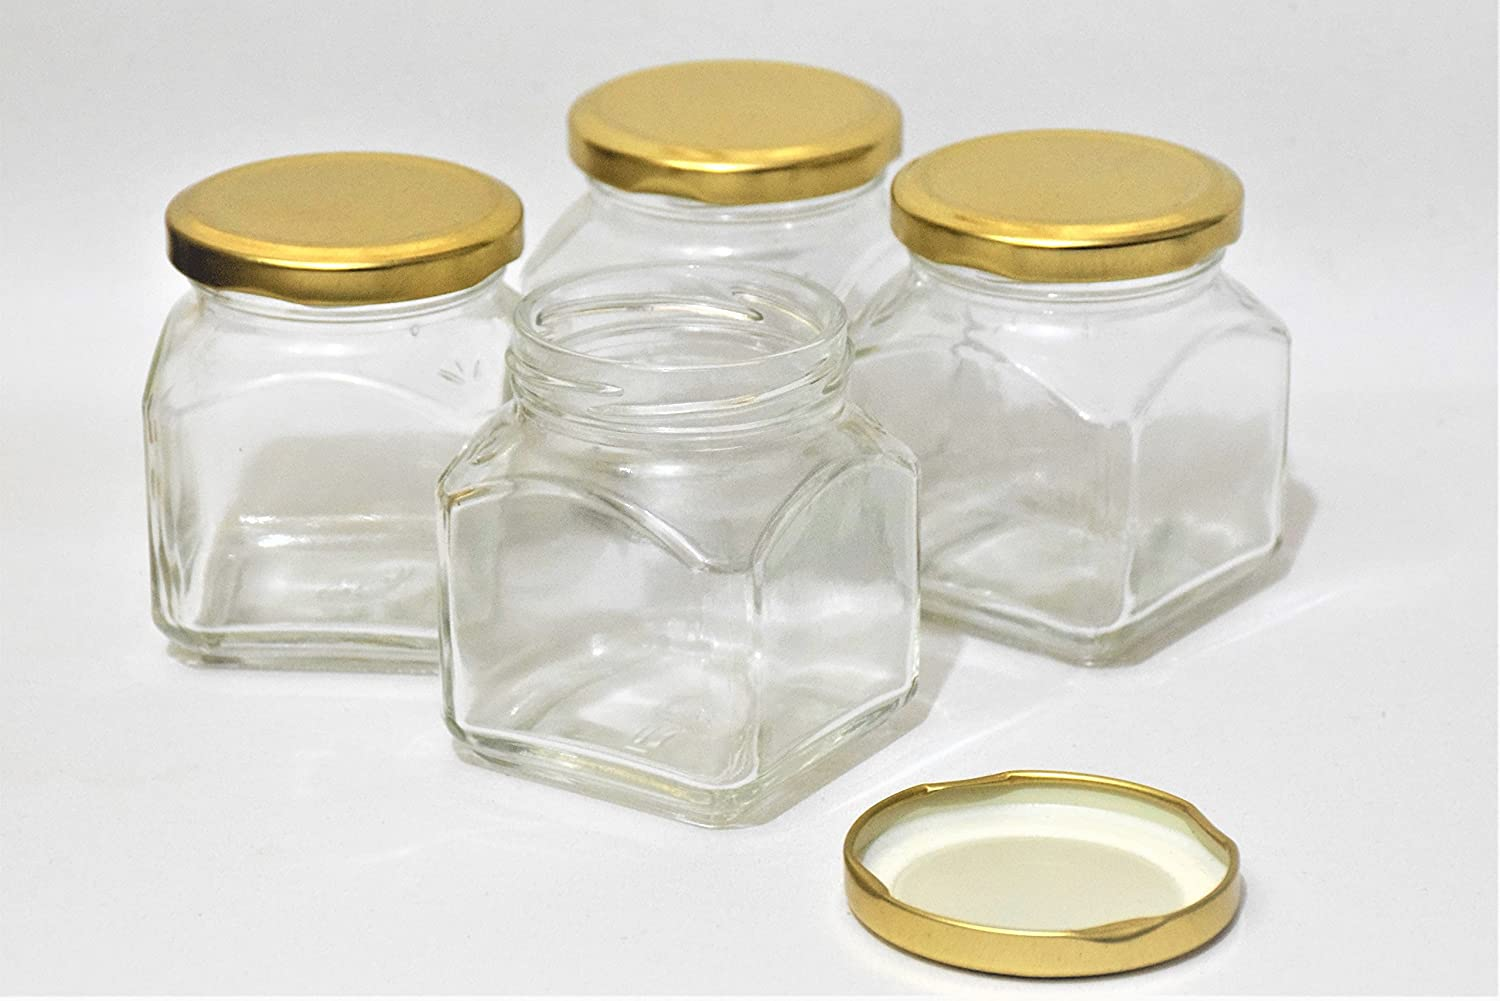 Pure Source India Small Glass jar Set of 4 pcs coming with metal Golden color Air Tight and Rust proof cap , Capacity 100 Gram About Made In India .